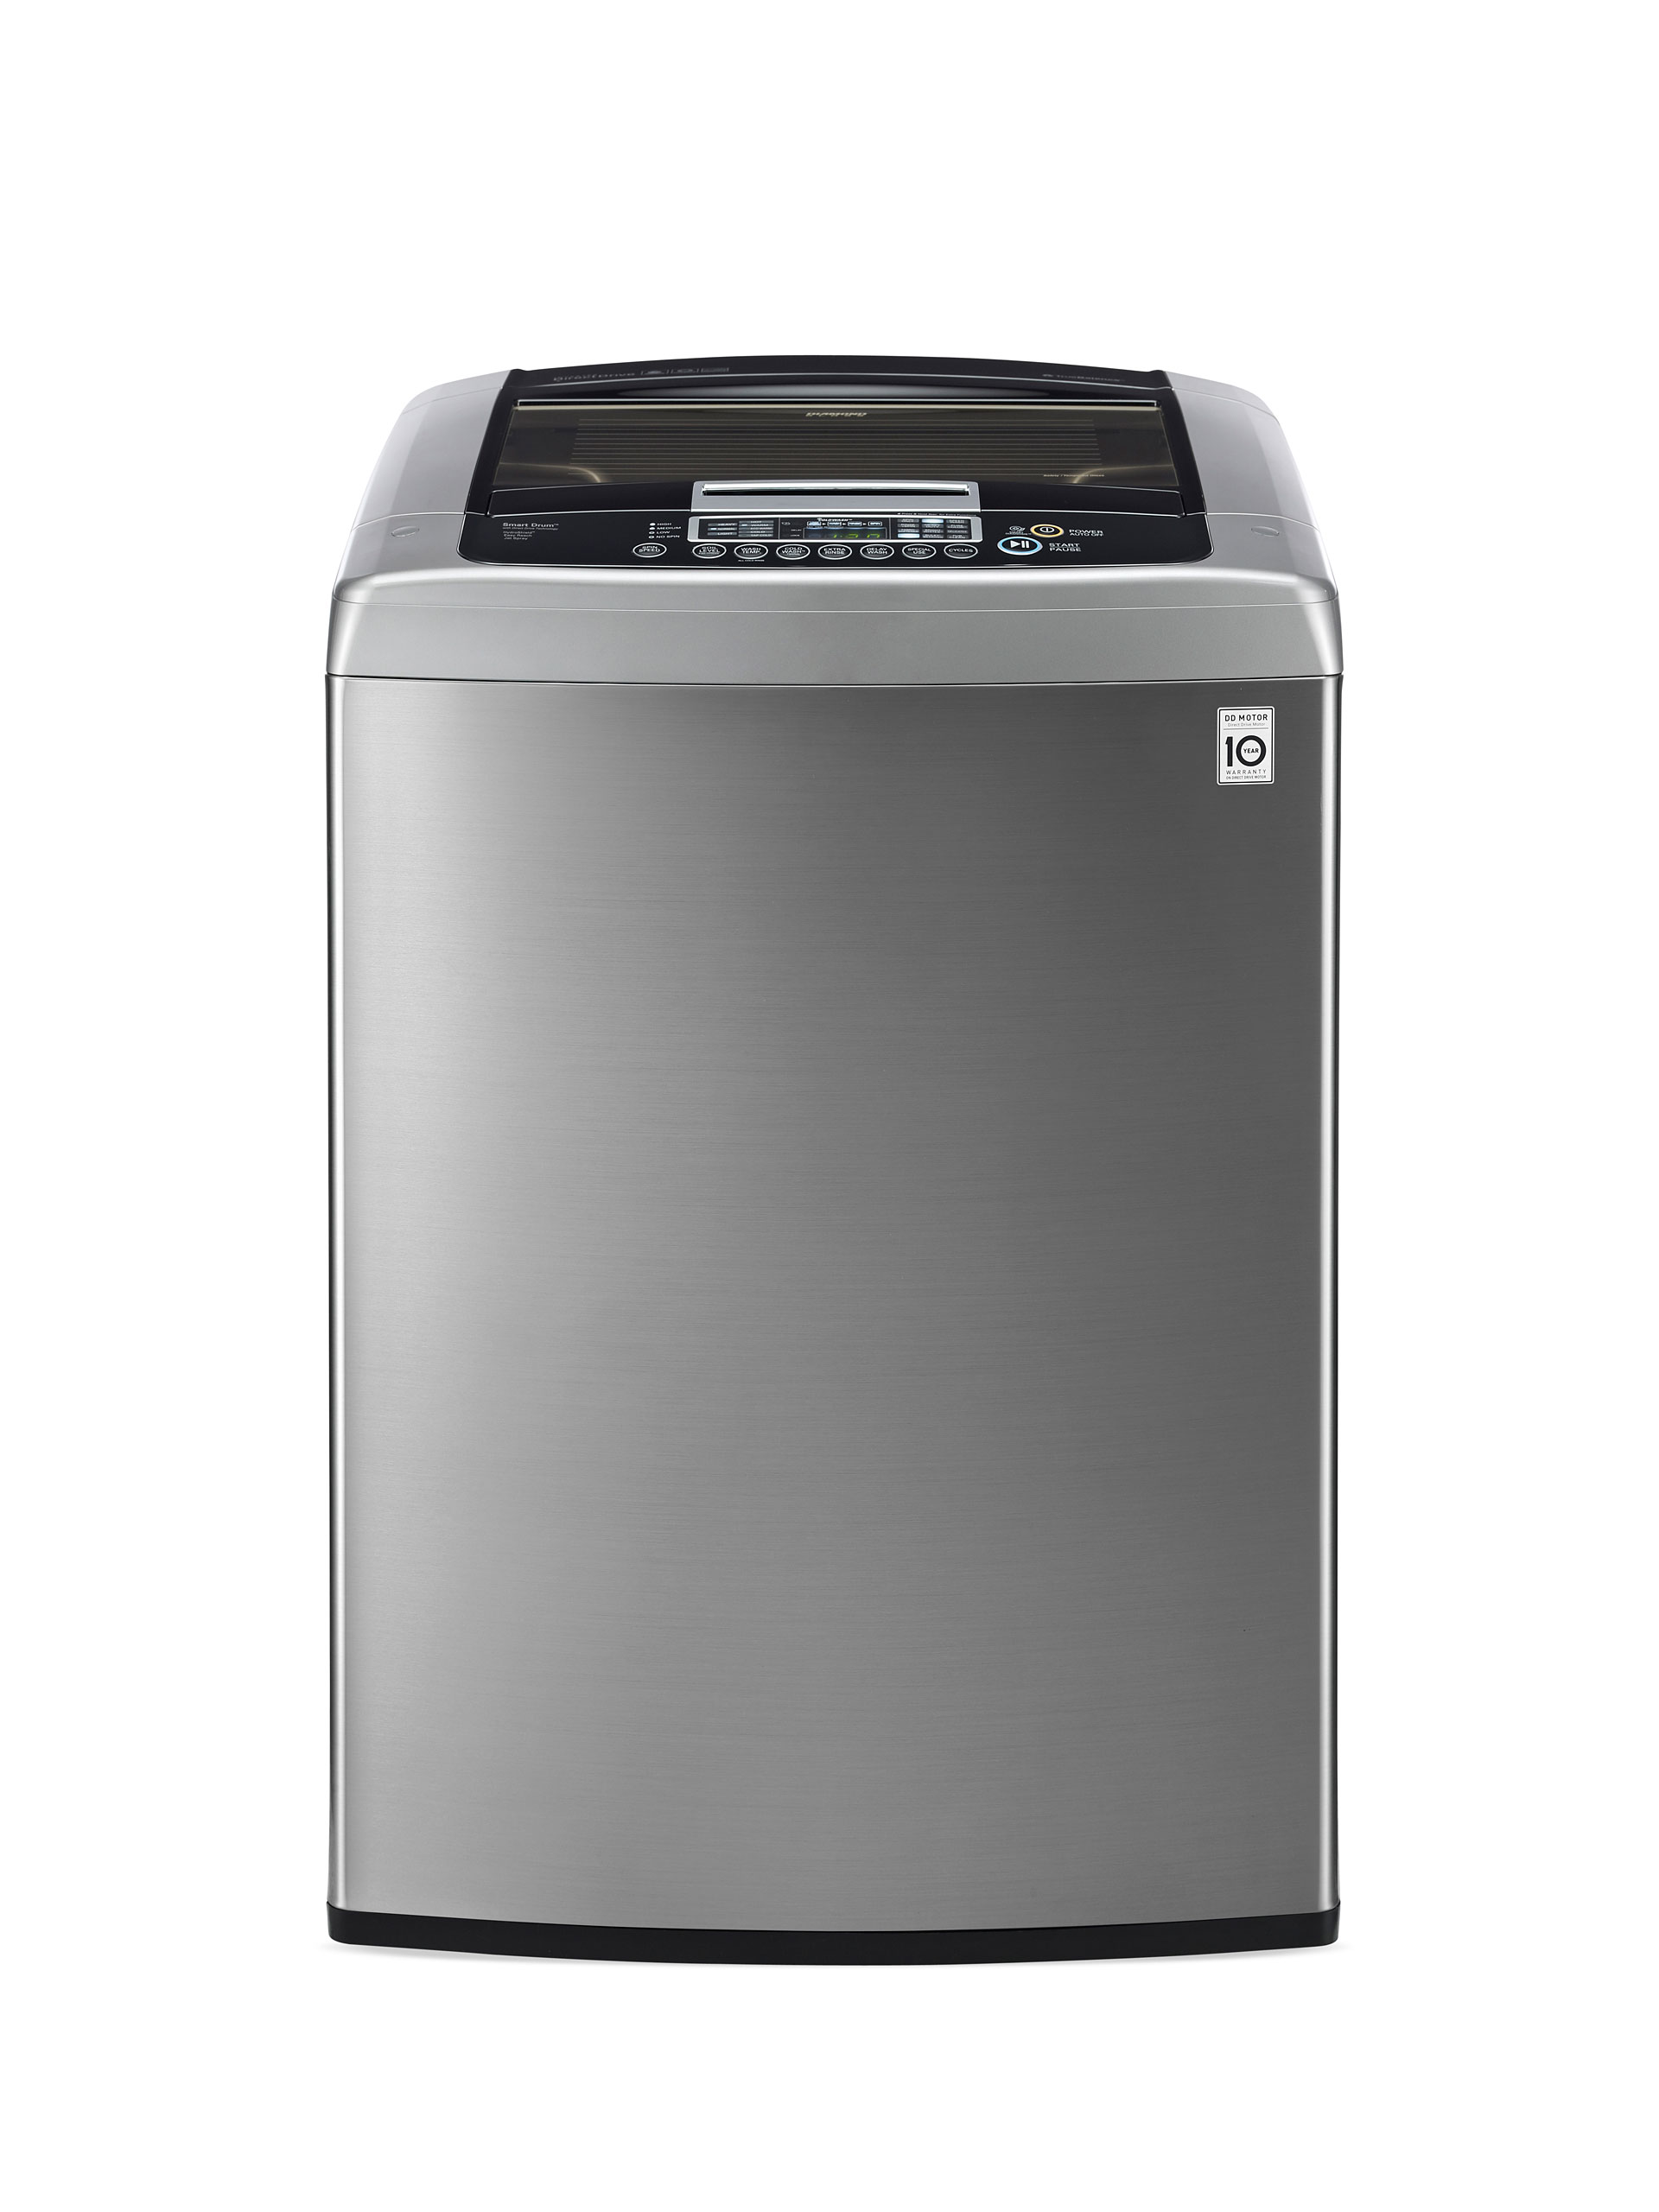 Best Washing Machines Reviews Of Top Washers - Clean washing machine ideas